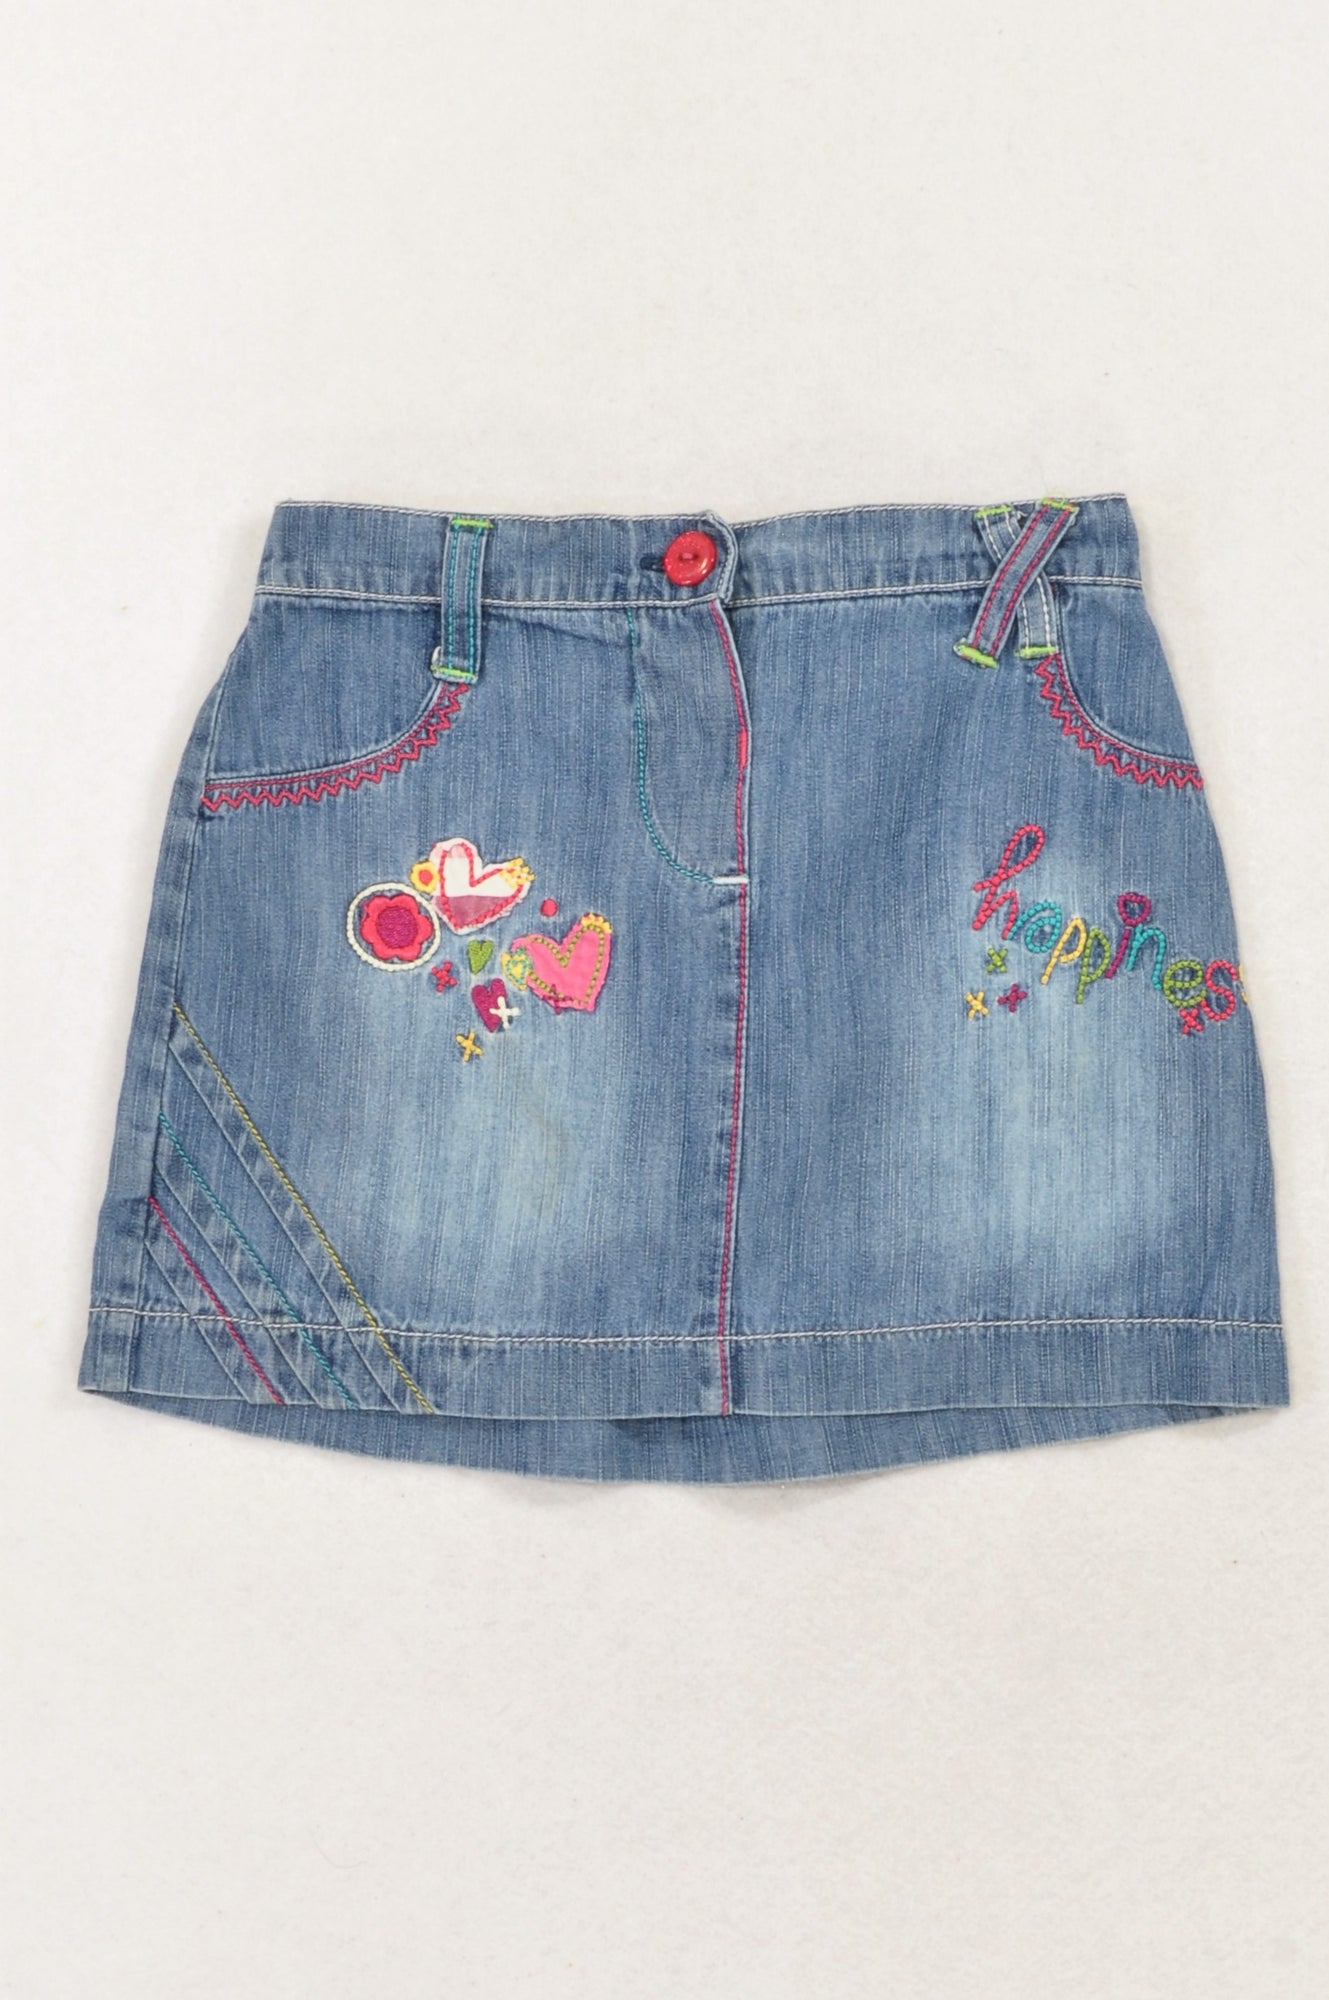 Unbranded Denim Embroidered Hearts & Happiness Skirt Girls 18-24 months